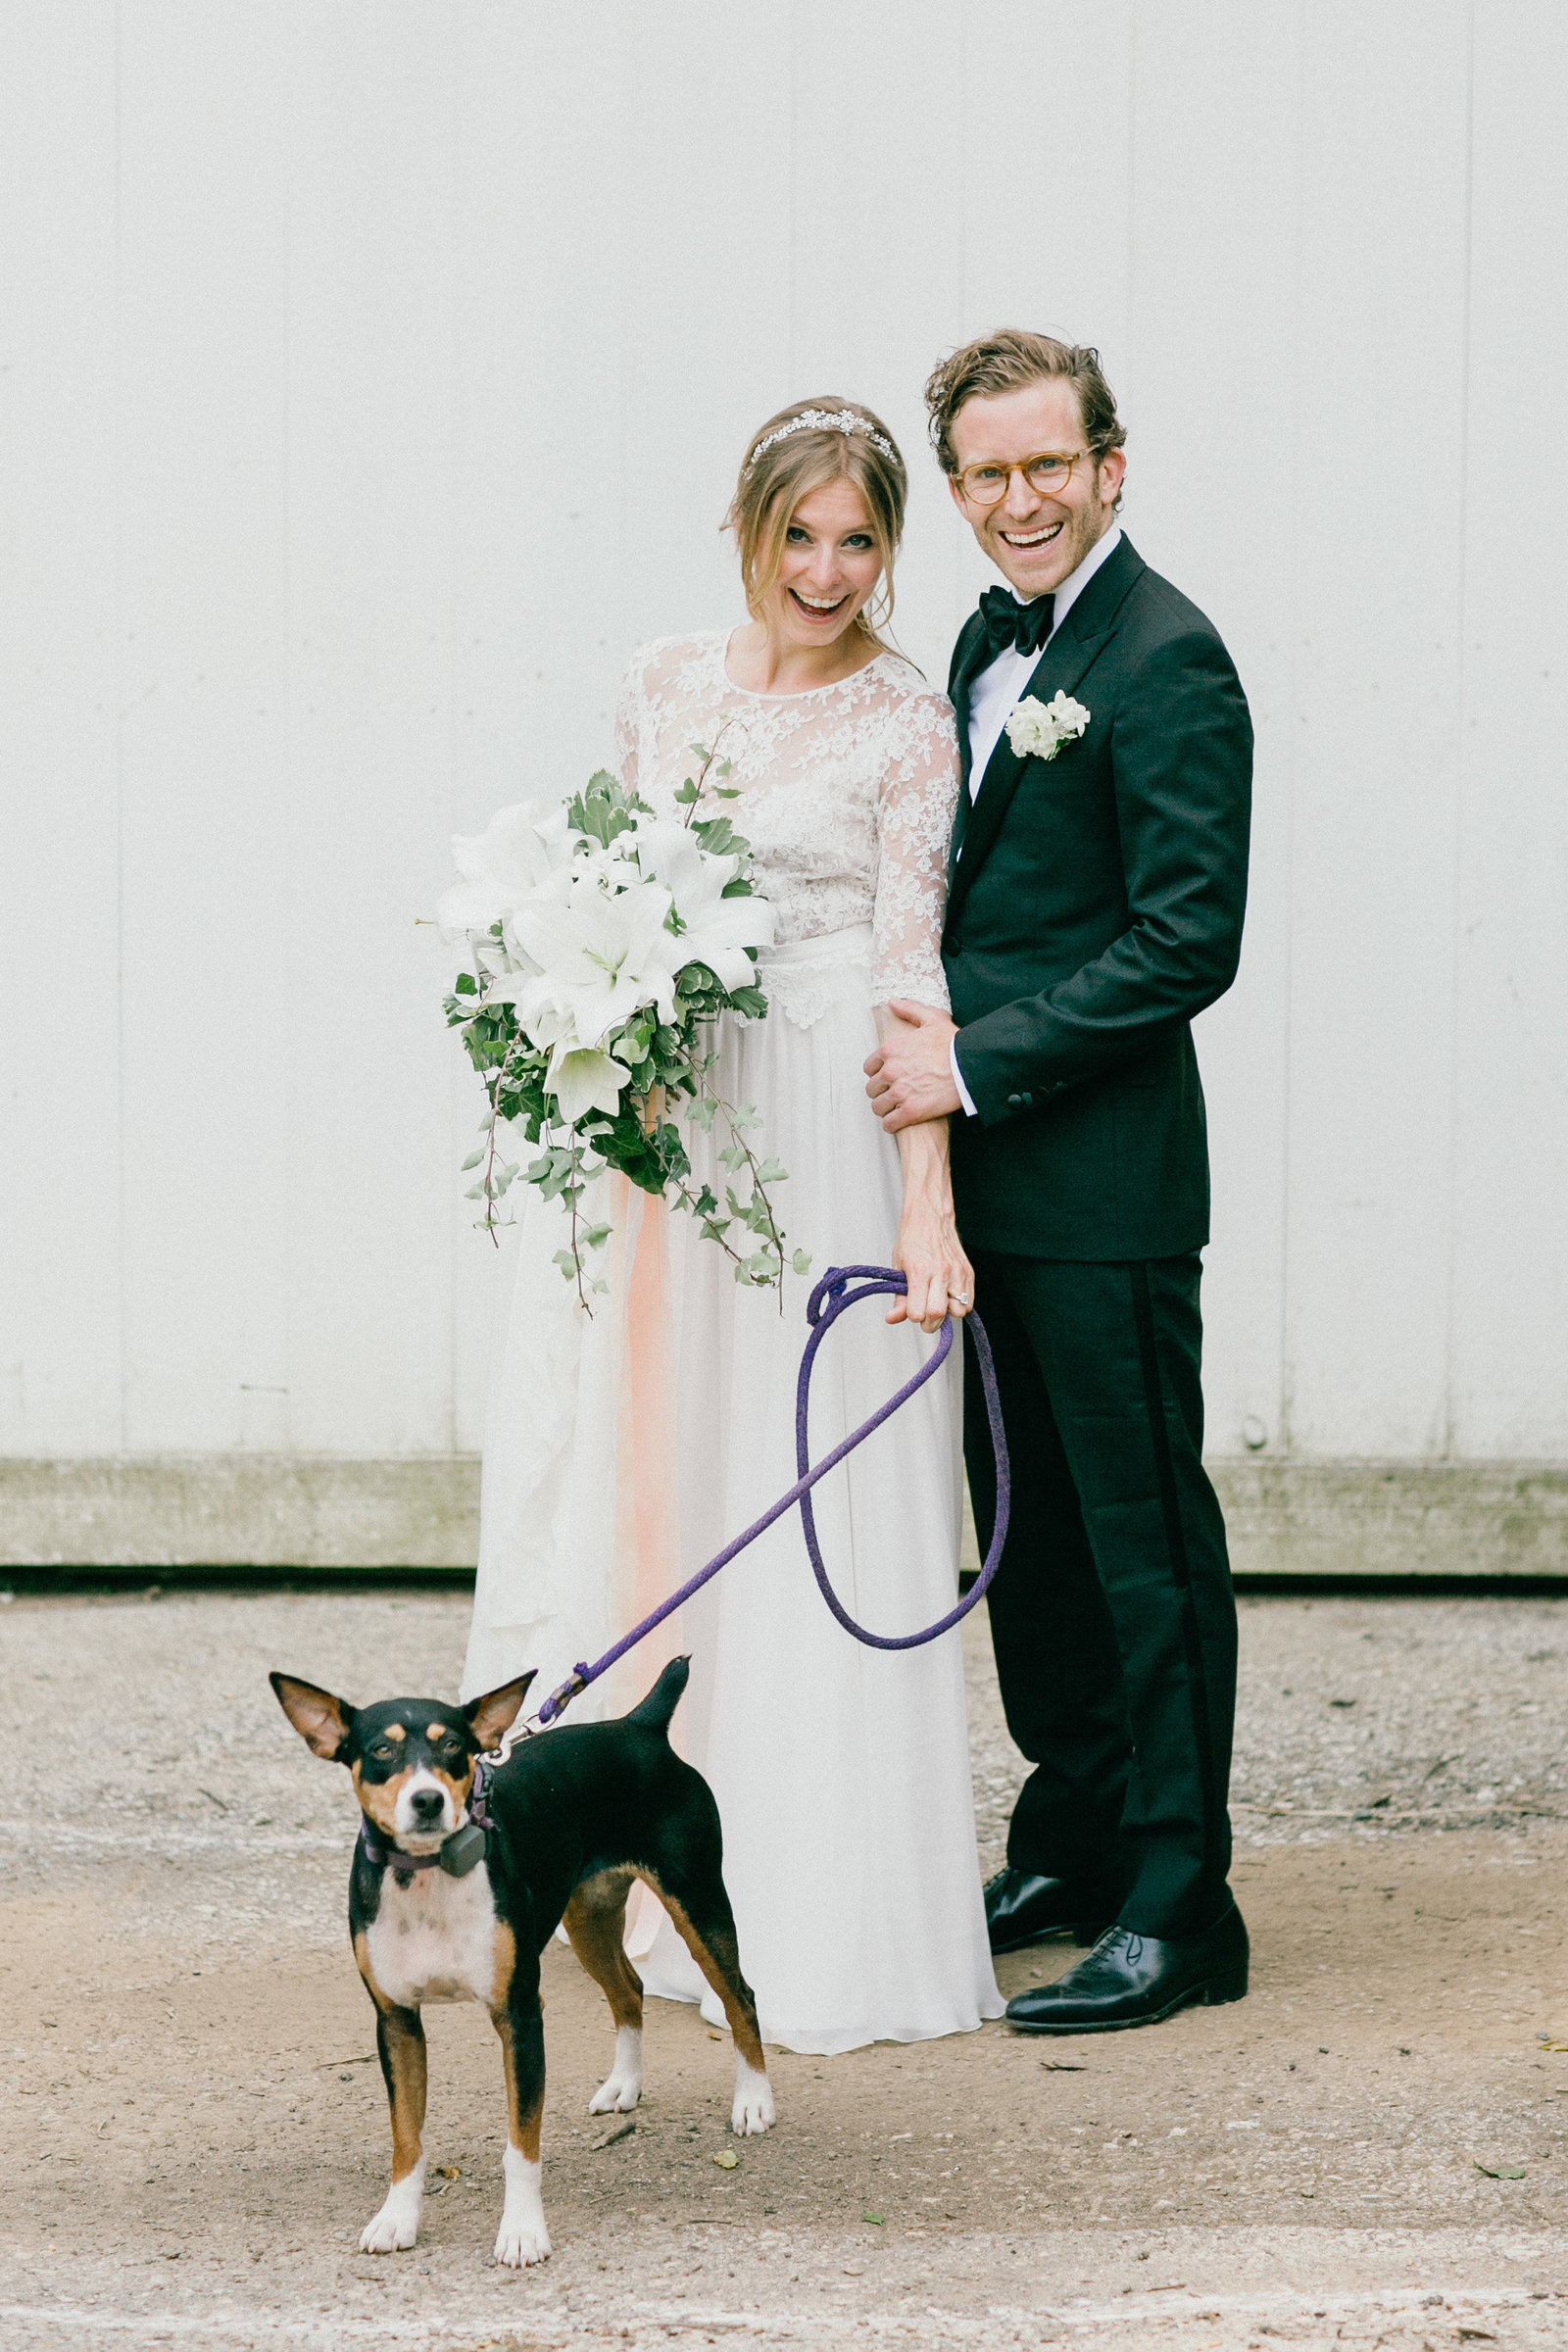 Family portrait of the bride, groom, and favorite furry friend.